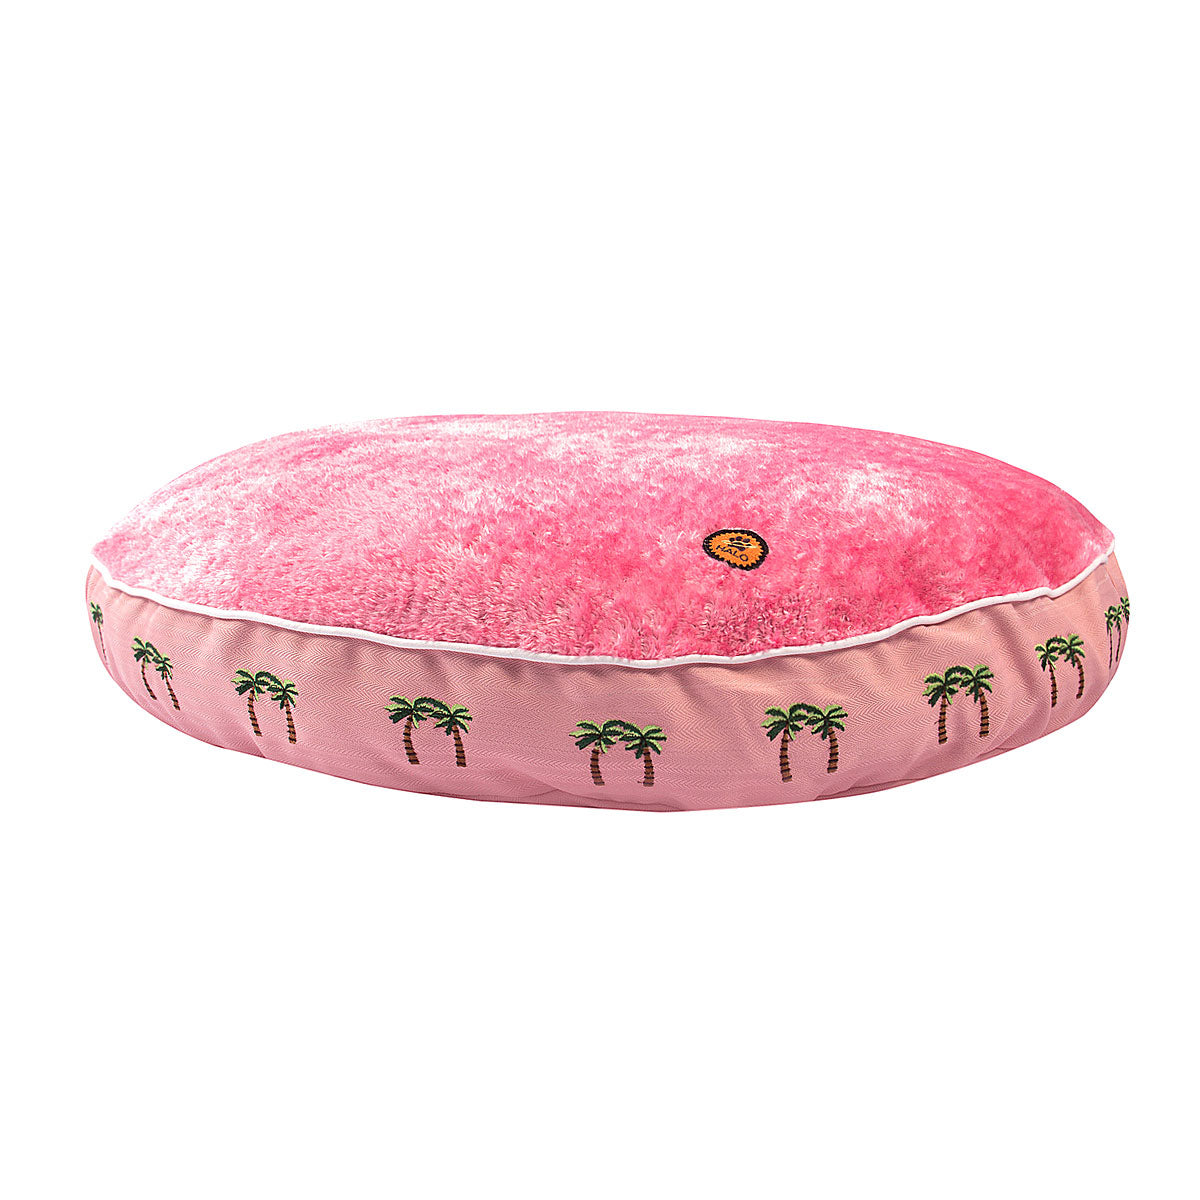 Halo Palm Trees Round Dog Bed_2748